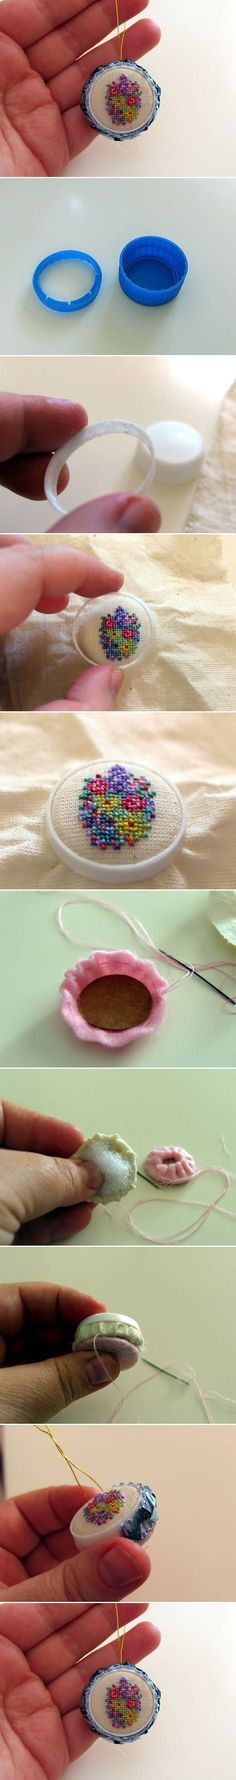 DIY Bottle Cap Ornament DIY Bottle Cap Ornament